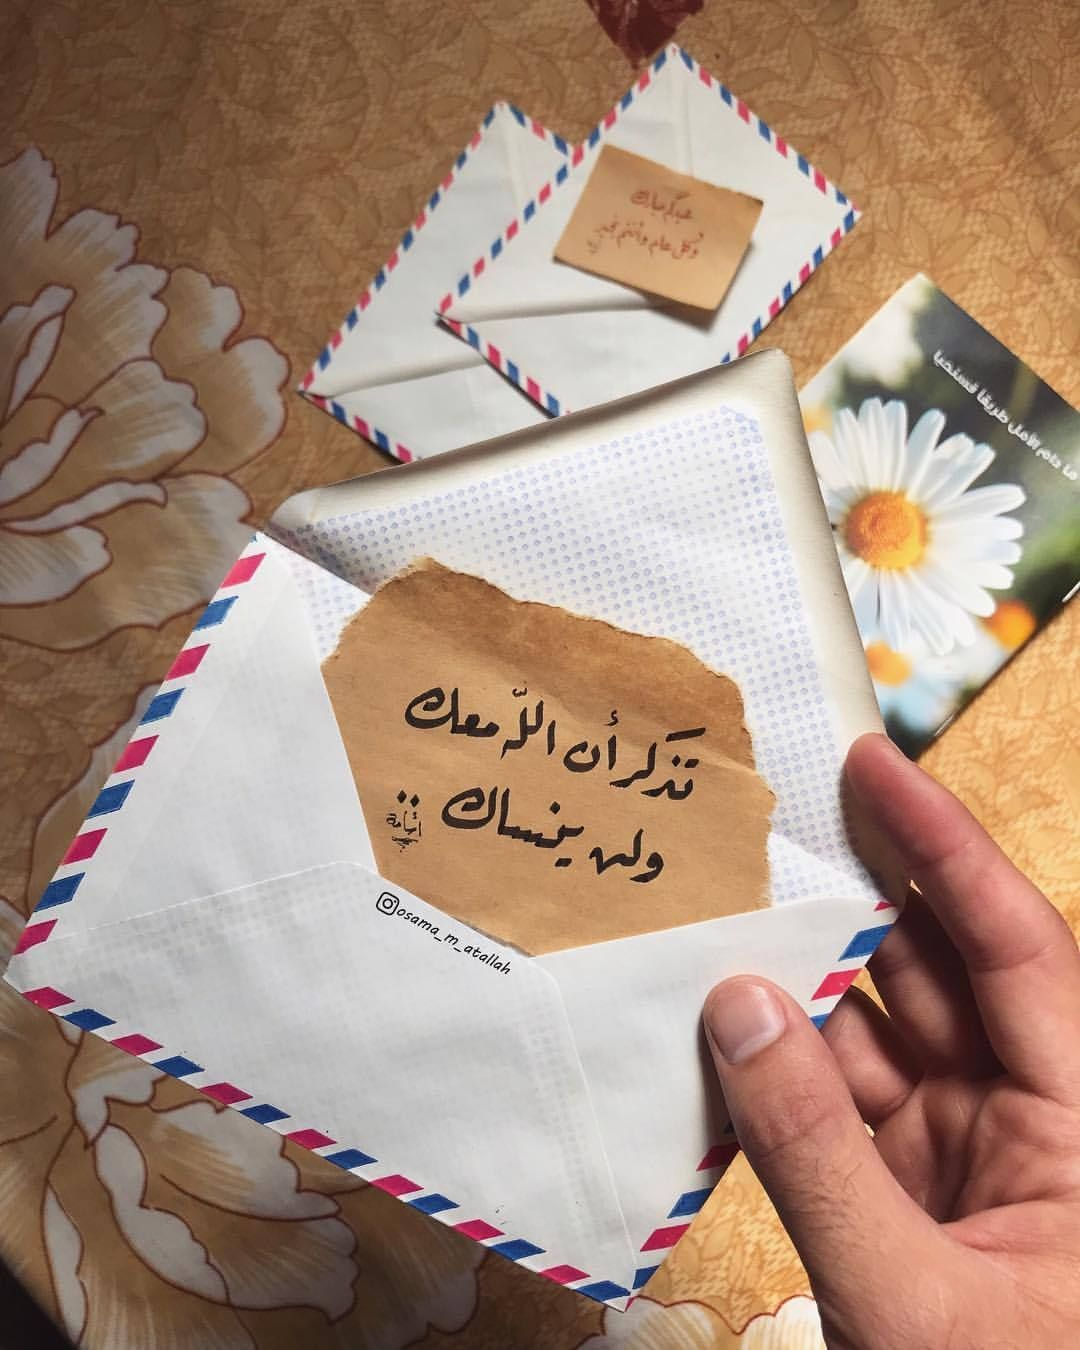 Osama M Atallah تذكر أن الله معك ولن ينساك Birthday Wishes For Mother Arabic Quotes Letter Gifts